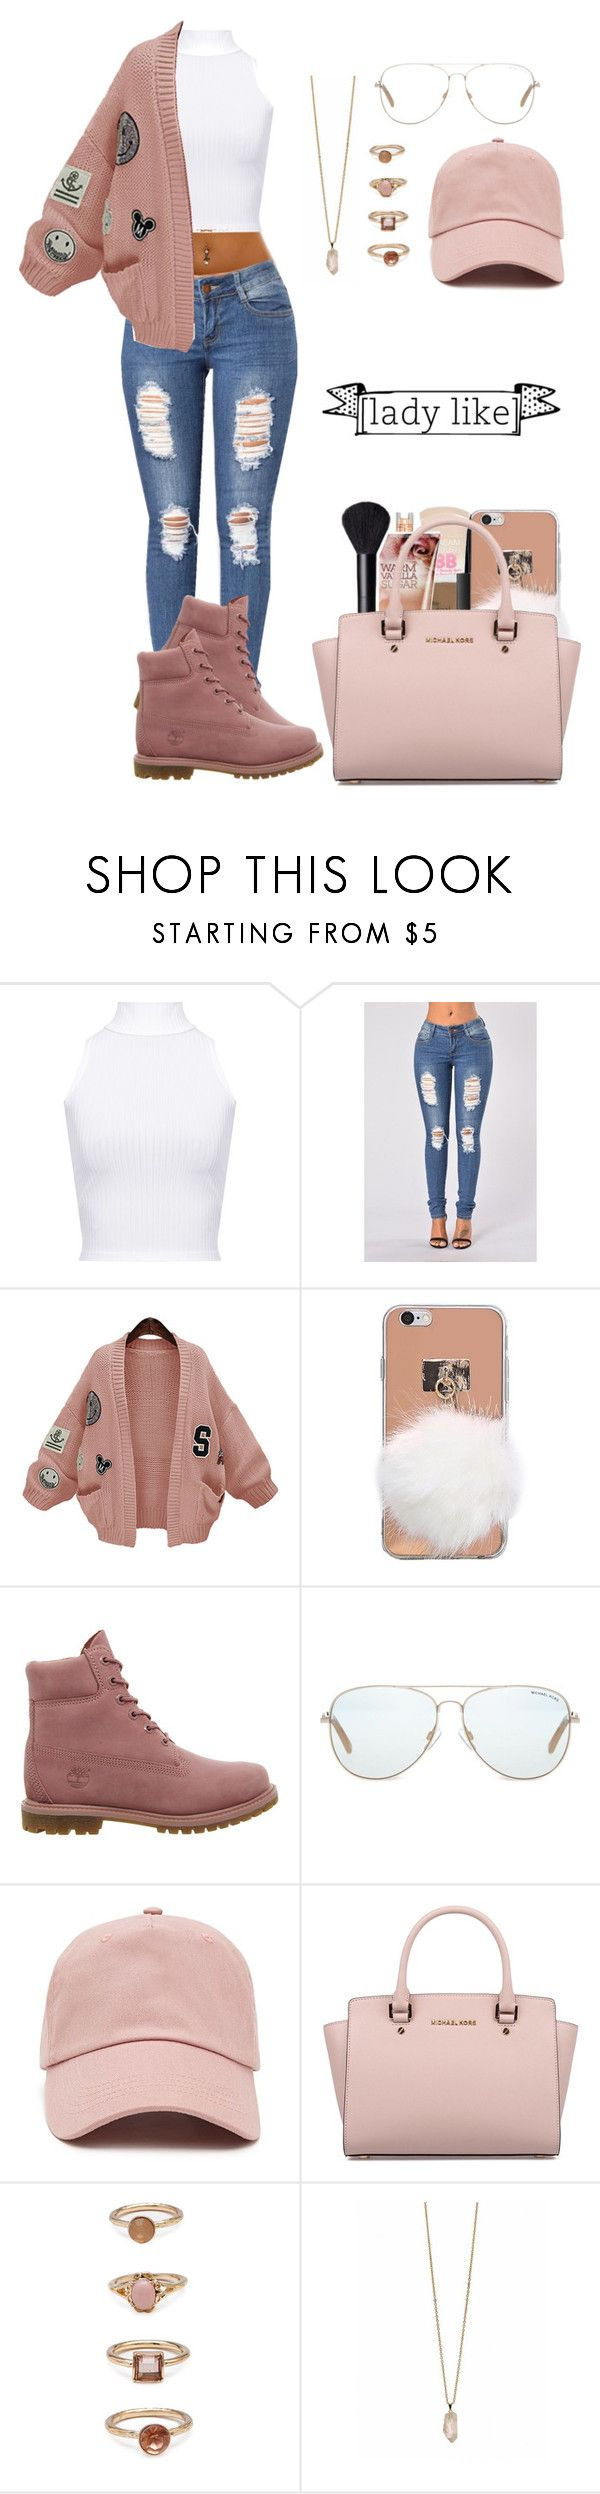 """Lady like"" by life957 ❤ liked on Polyvore featuring WearAll, WithChic, Timberland, Michael Kors, Forever 21 and Zoya"